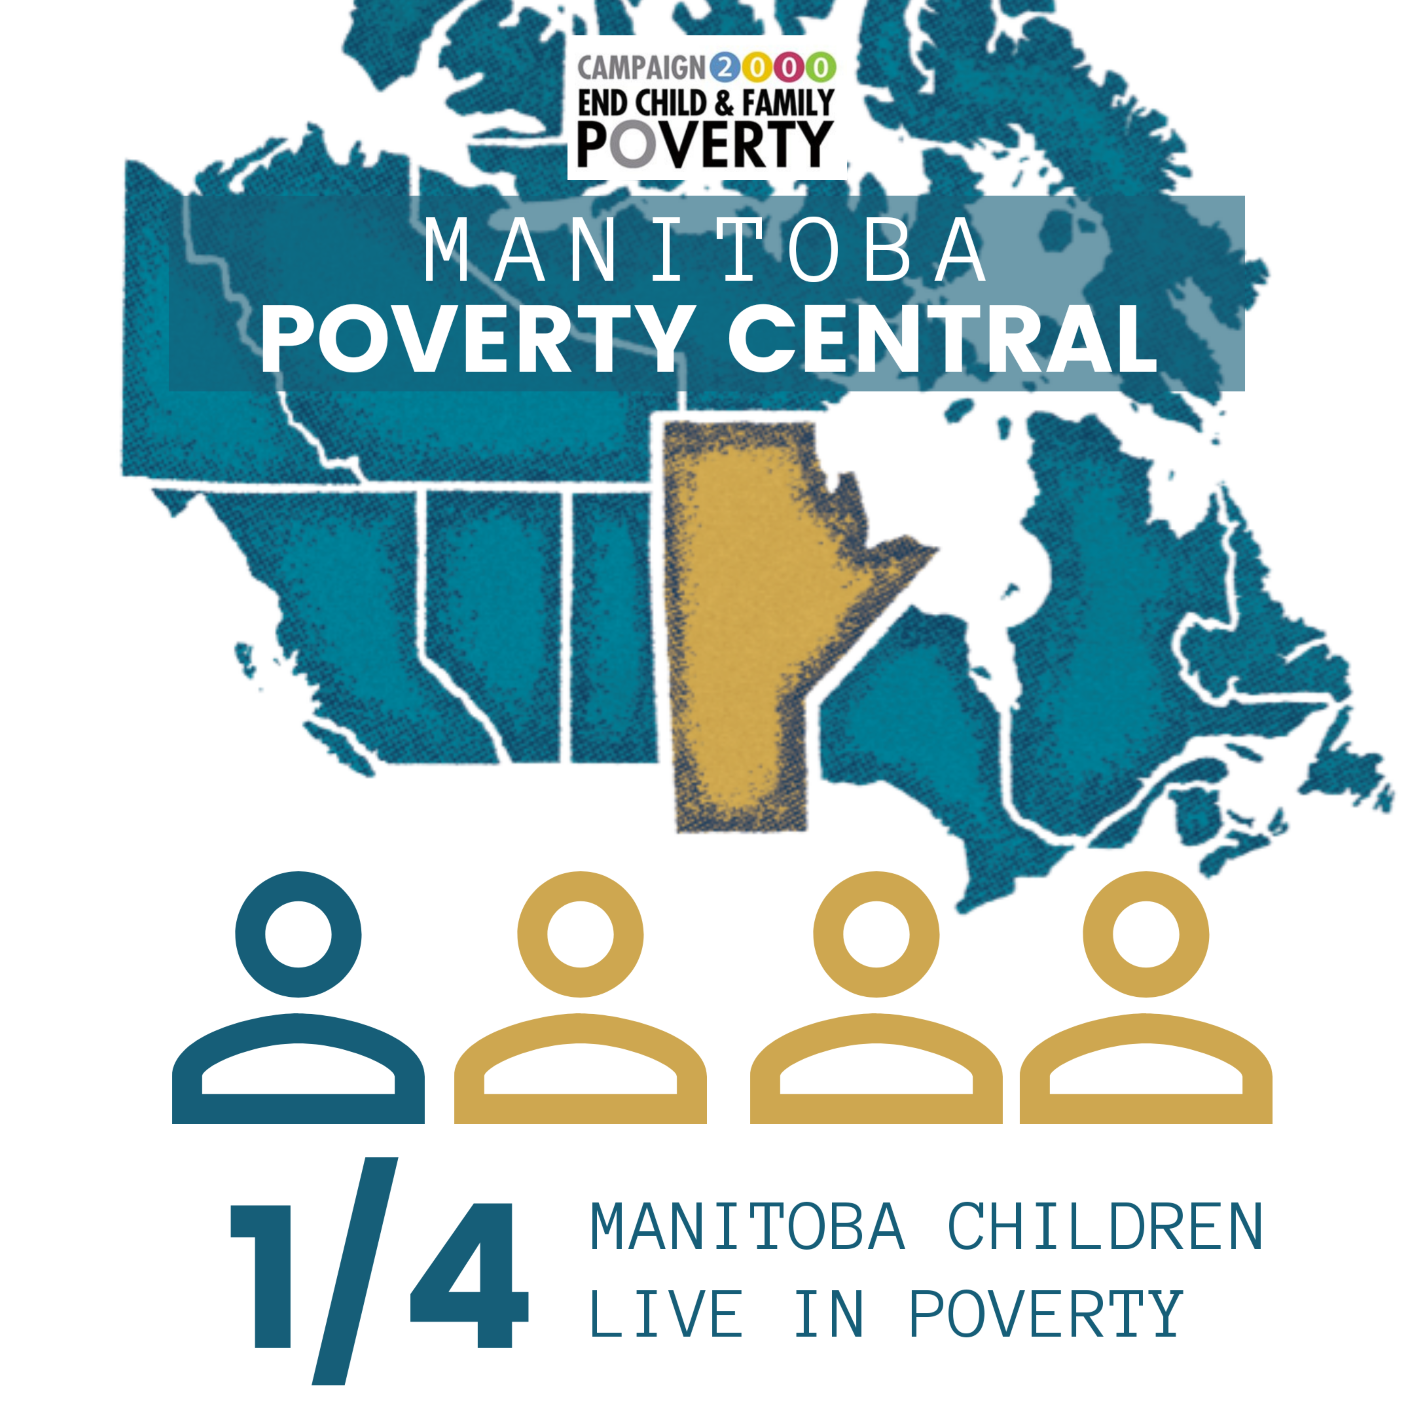 Poverty report 2020 update - social media resized